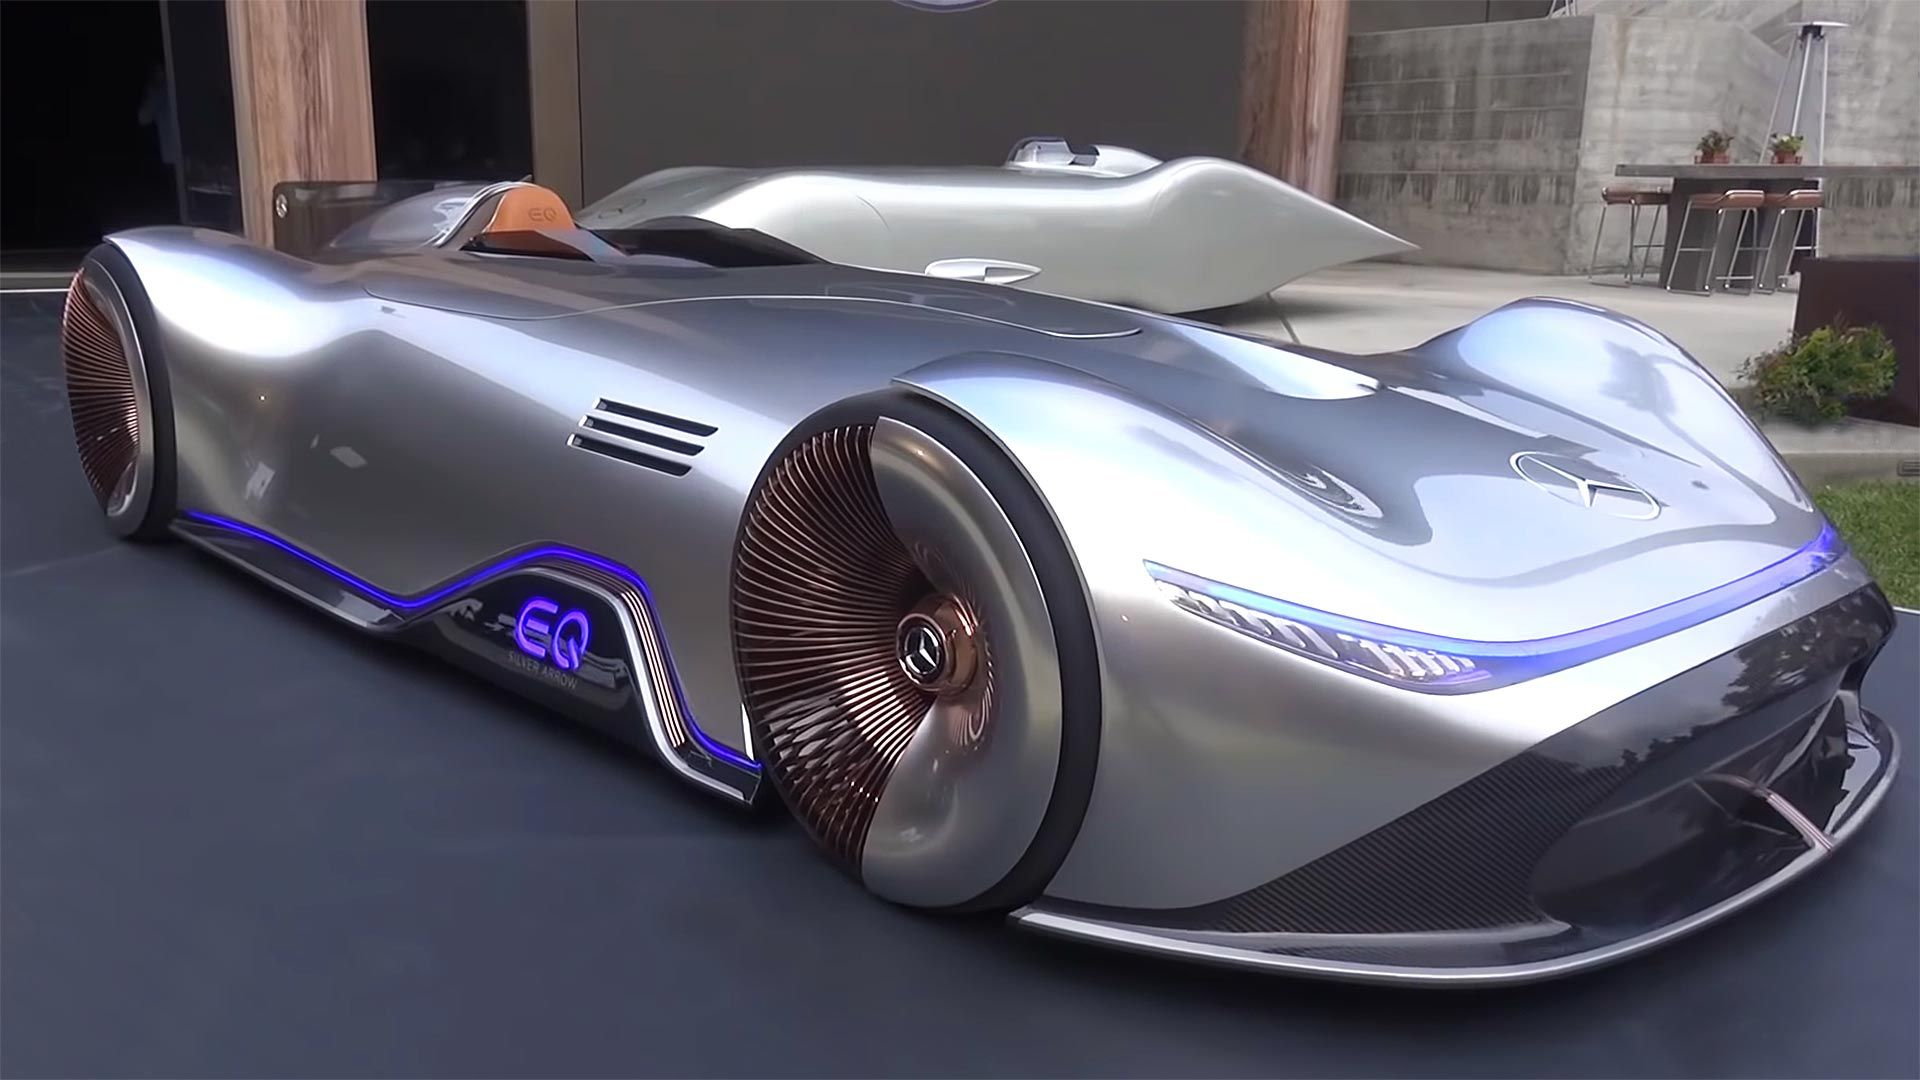 Mercedes Are Looking To The Future With The Vision Eq Silver Arrow Paying Tribute To Their Legendary Racing Cars This Futuristic Electric Hypercar Points